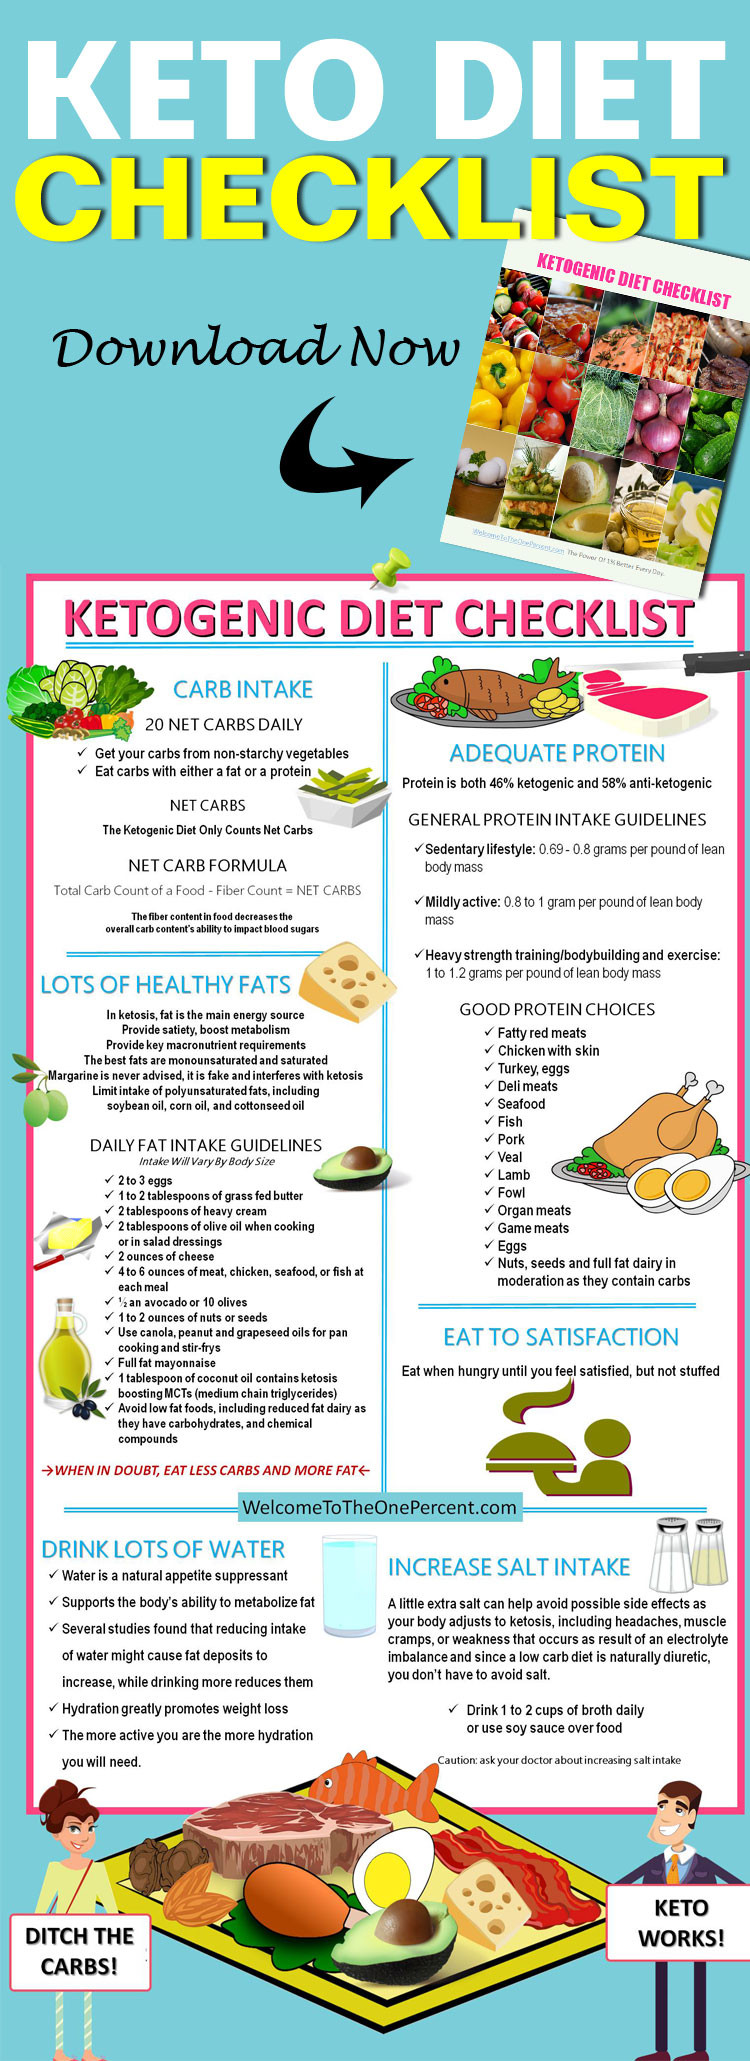 Keto Diet Is It Healthy  6 Easy Steps to Getting into Ketosis Quickly Download